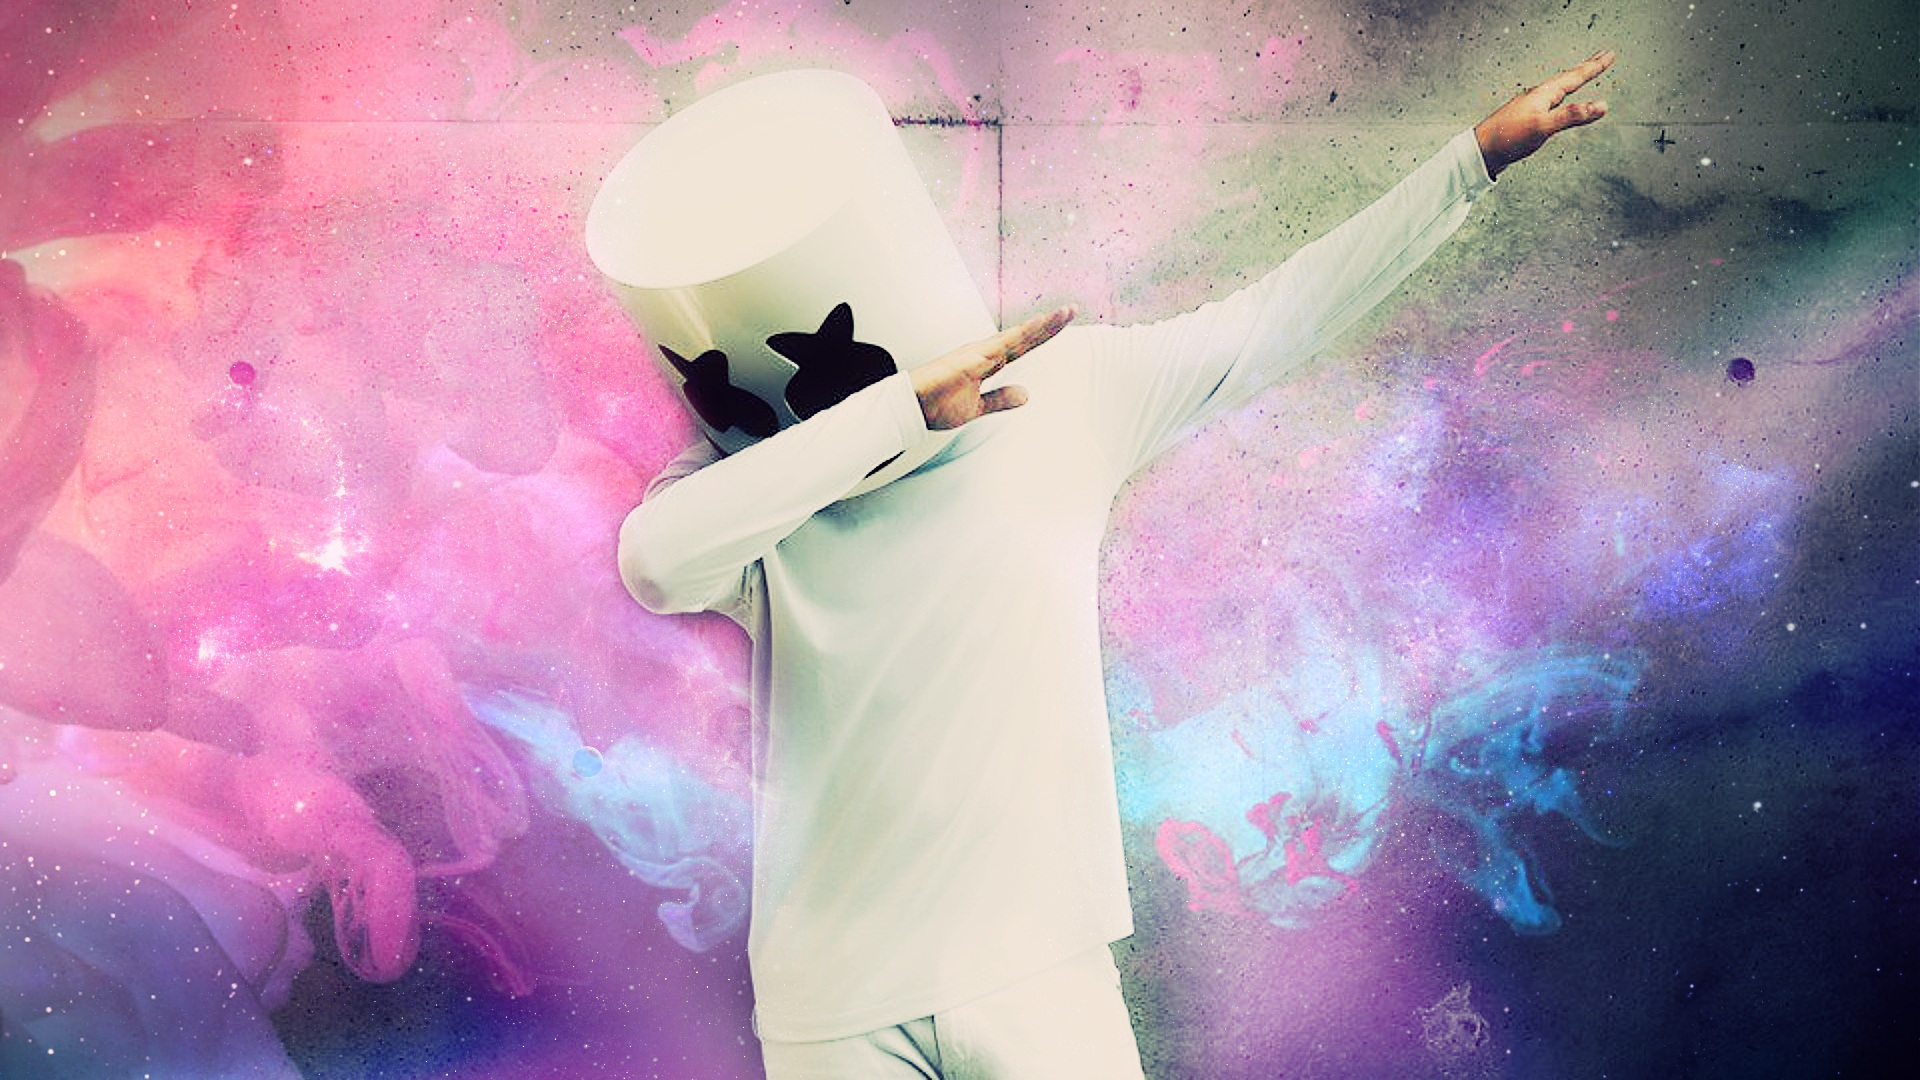 Dj Marshmello Hd Wallpaper Download X